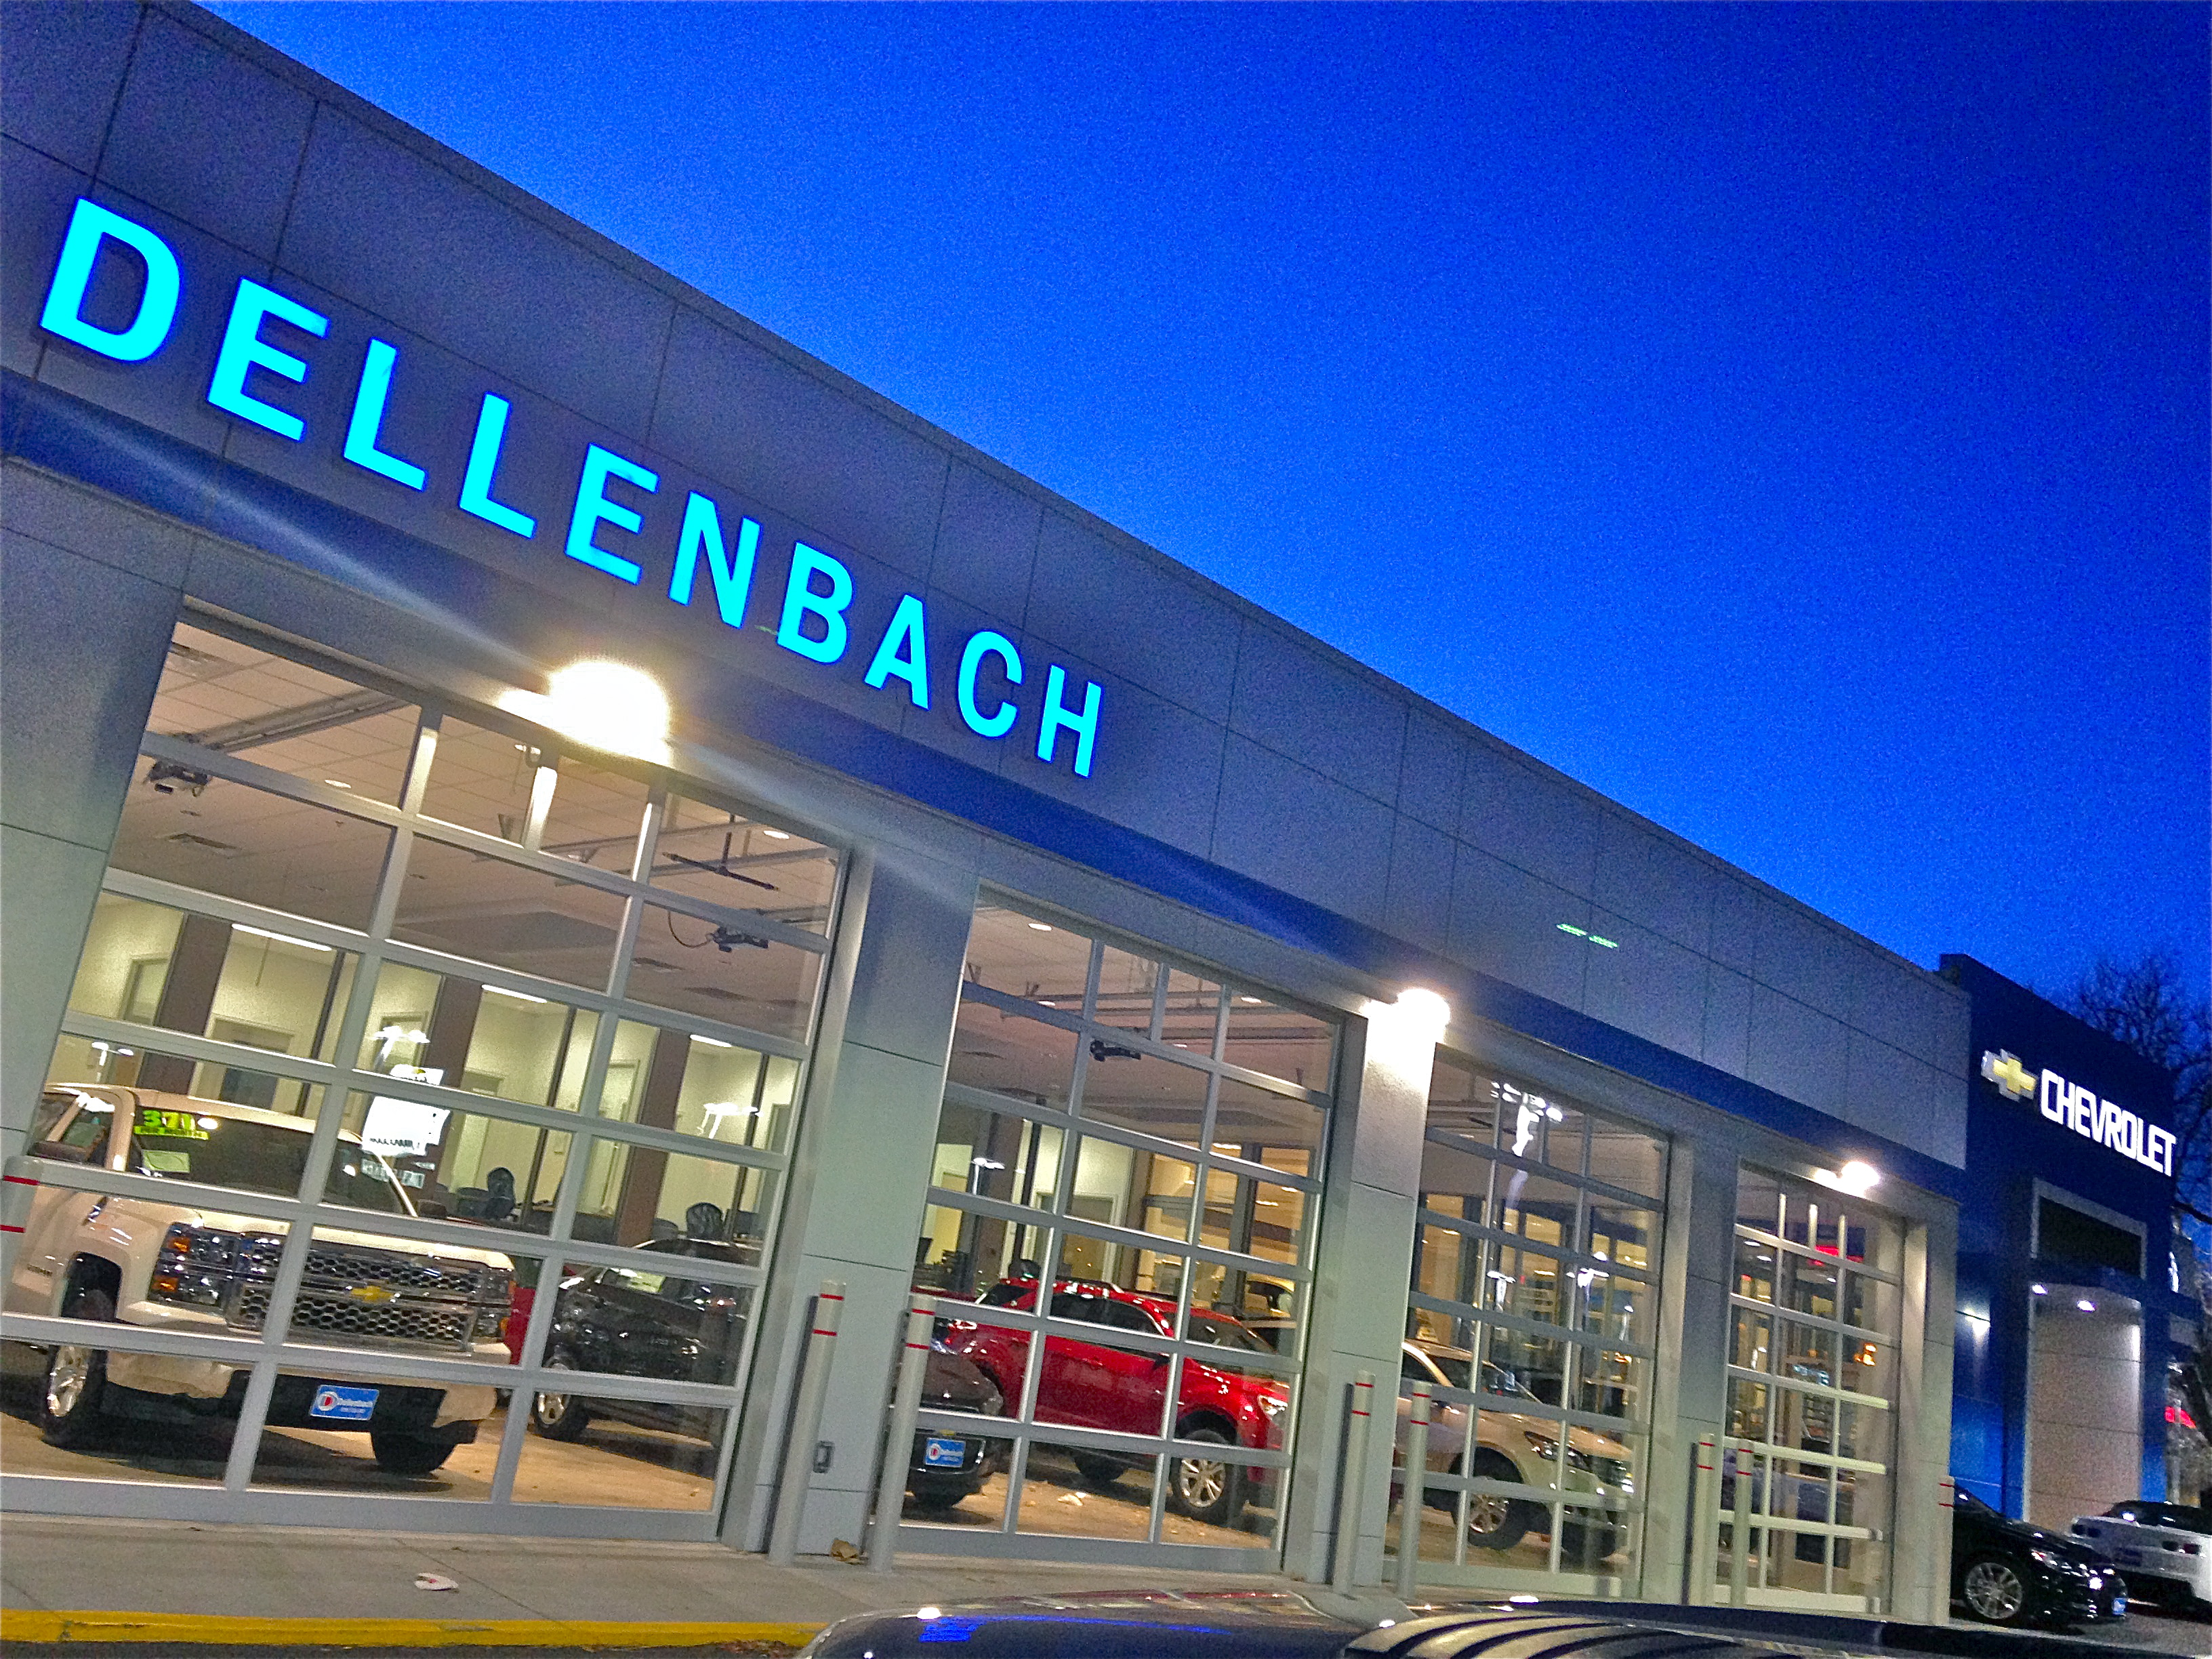 Meet our partner dellenbach motors drive electric for Dellenbach motors used cars